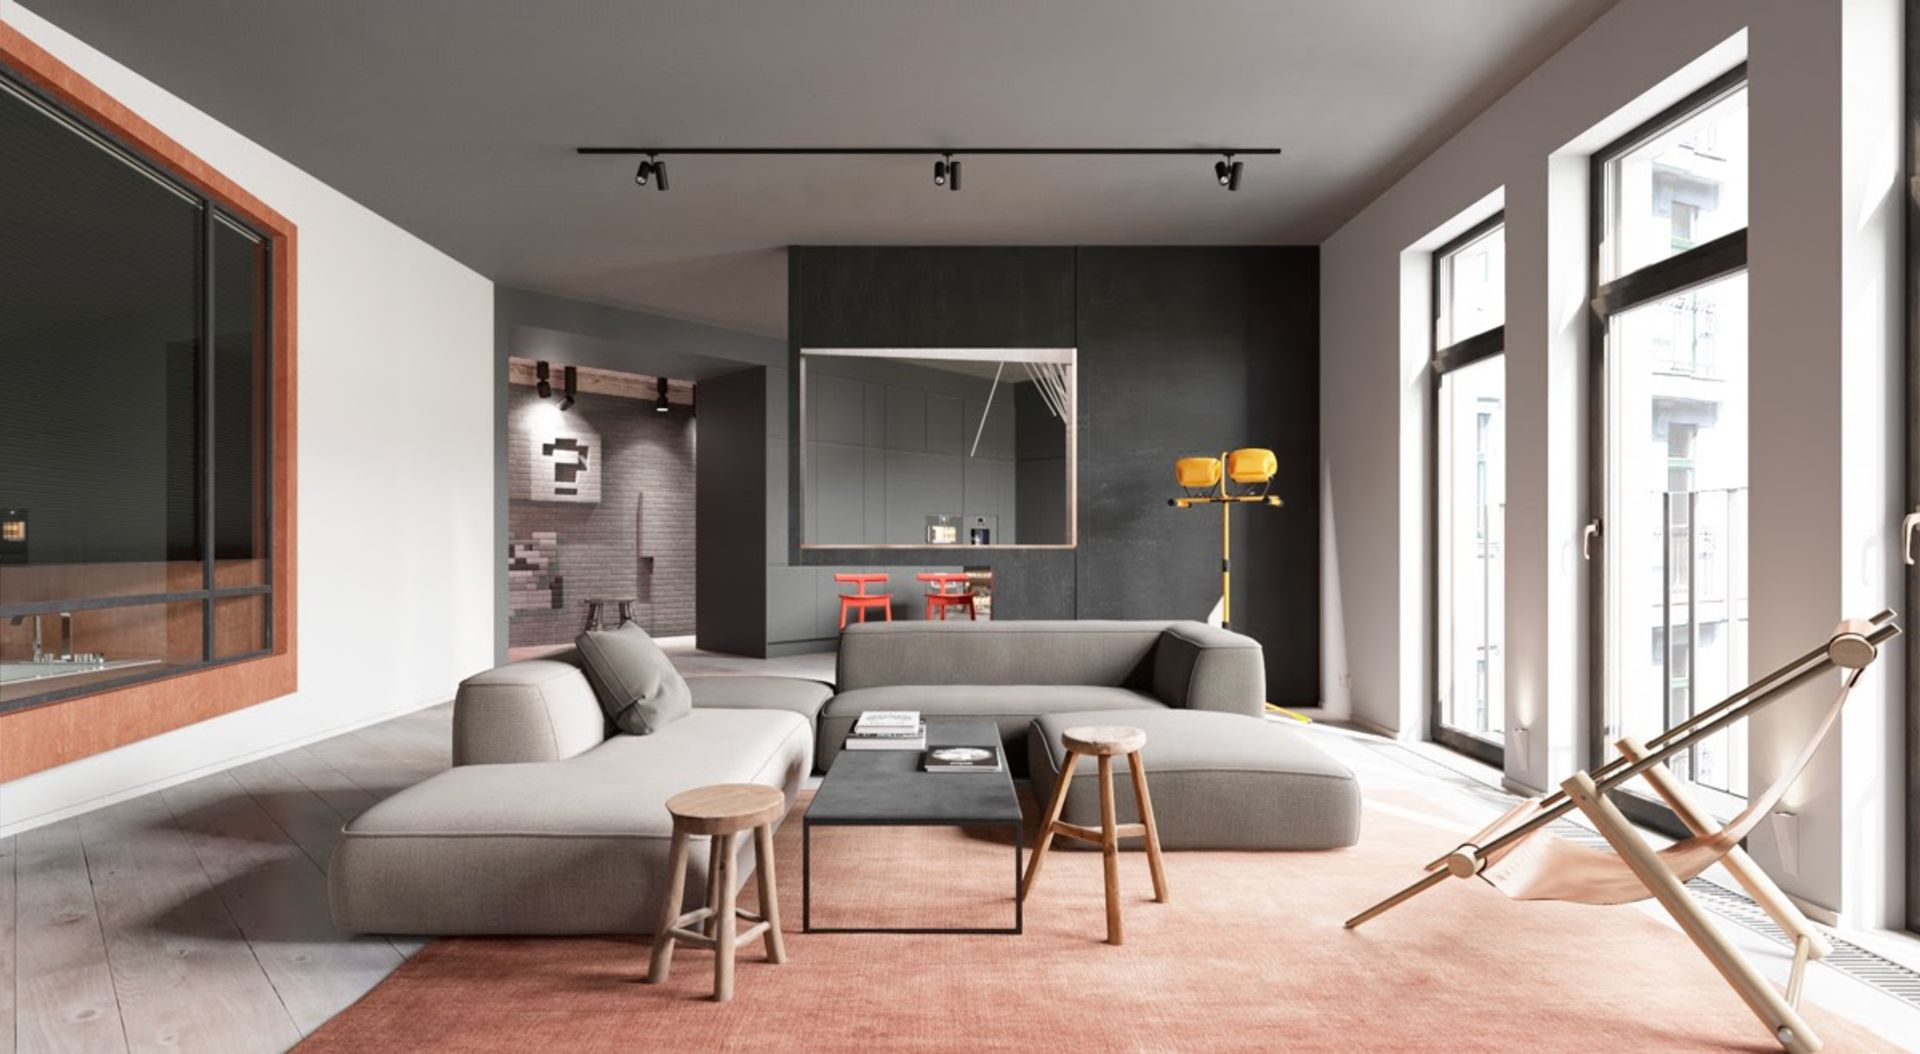 Changing Your Home's Layout Without Major Renovations